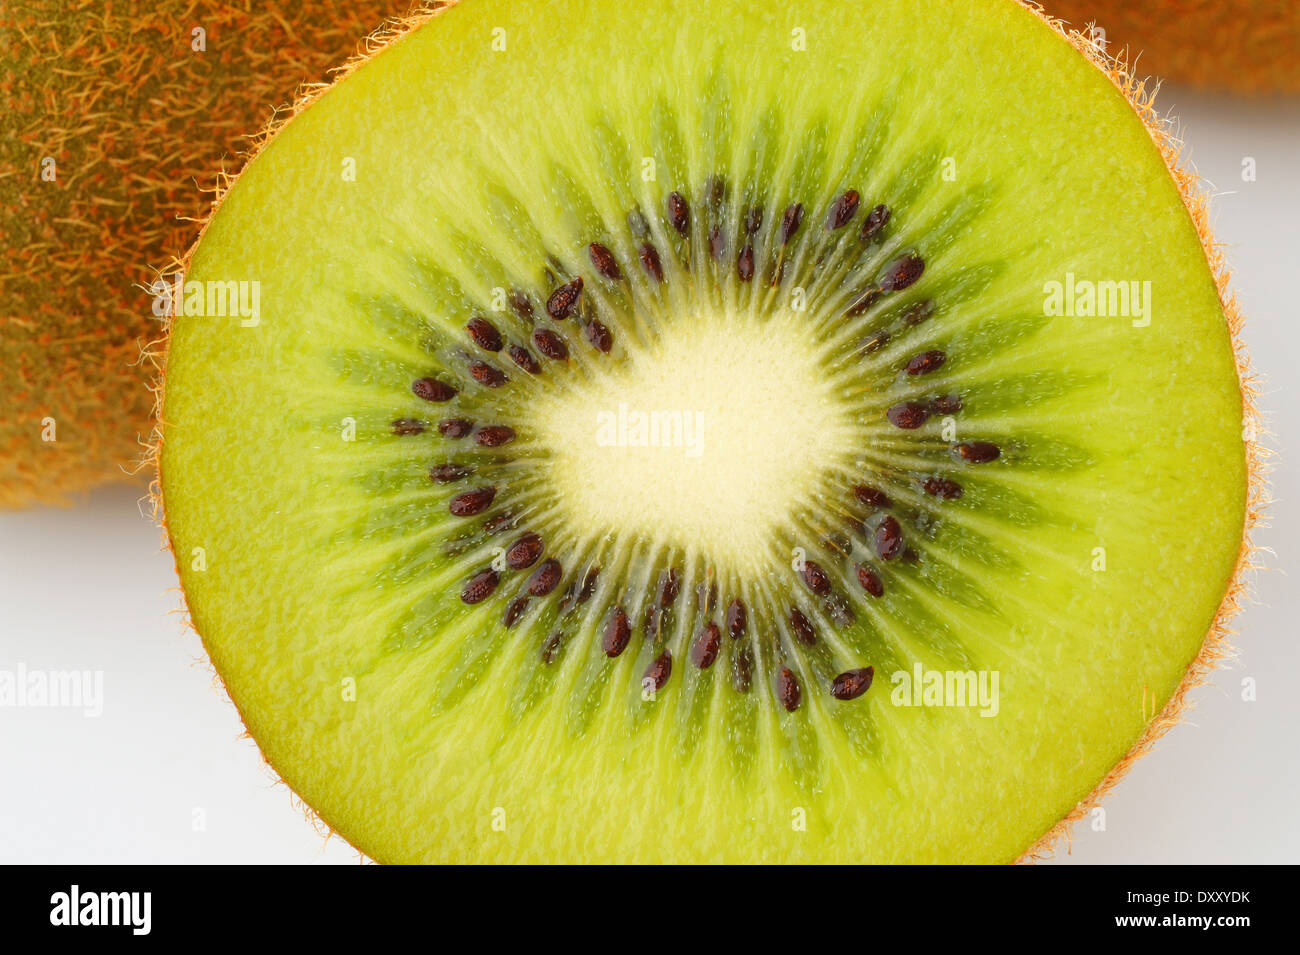 kiwi fruit on white background Stock Photo